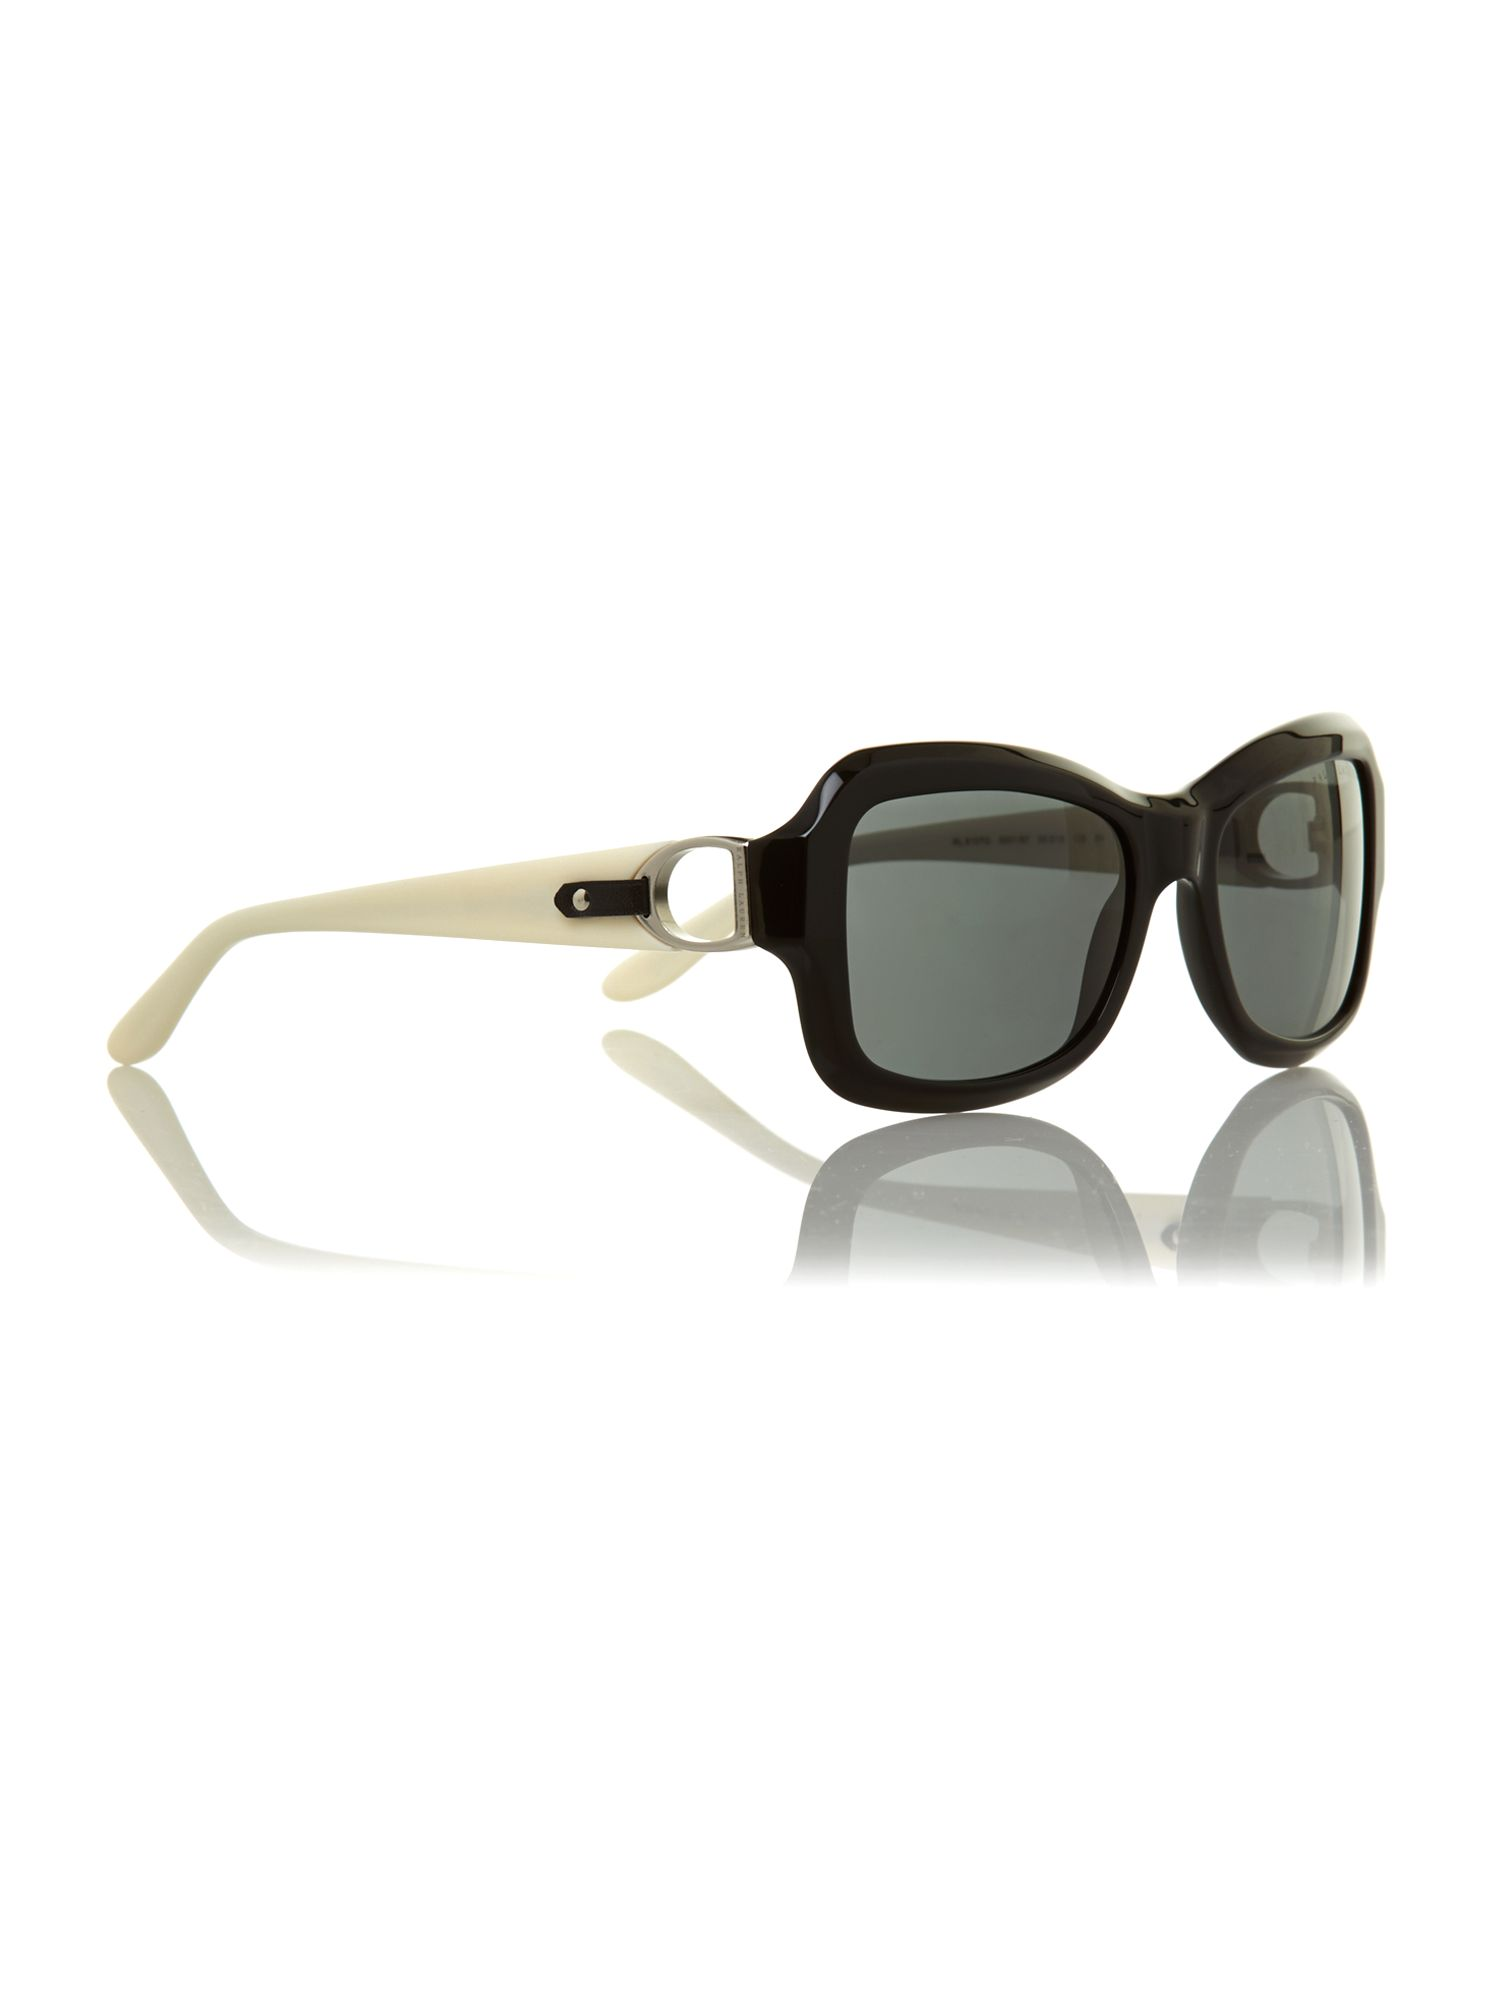 Black grey acetate sunglasses